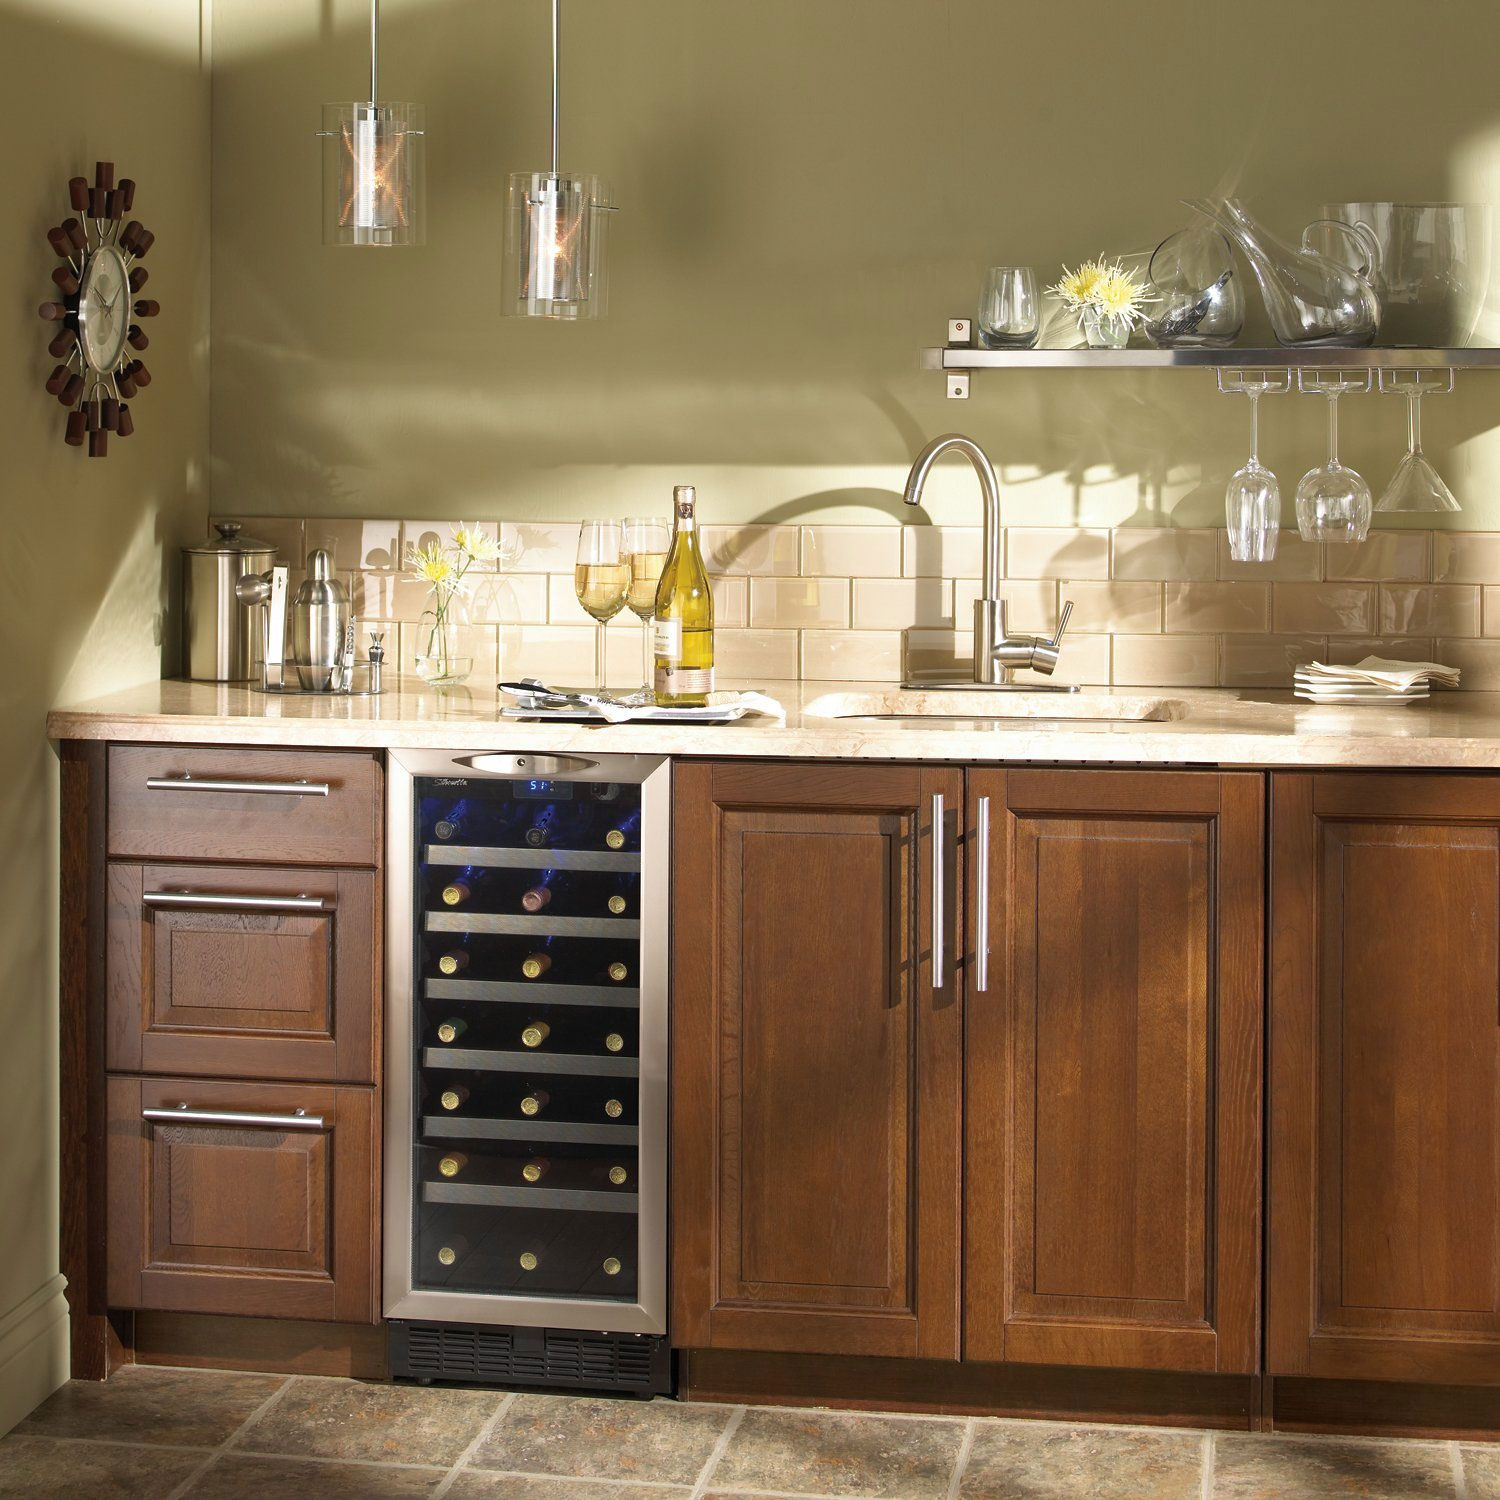 countertop refrigeration countertops fireside modern kitchens wine refrigerator outdoor and